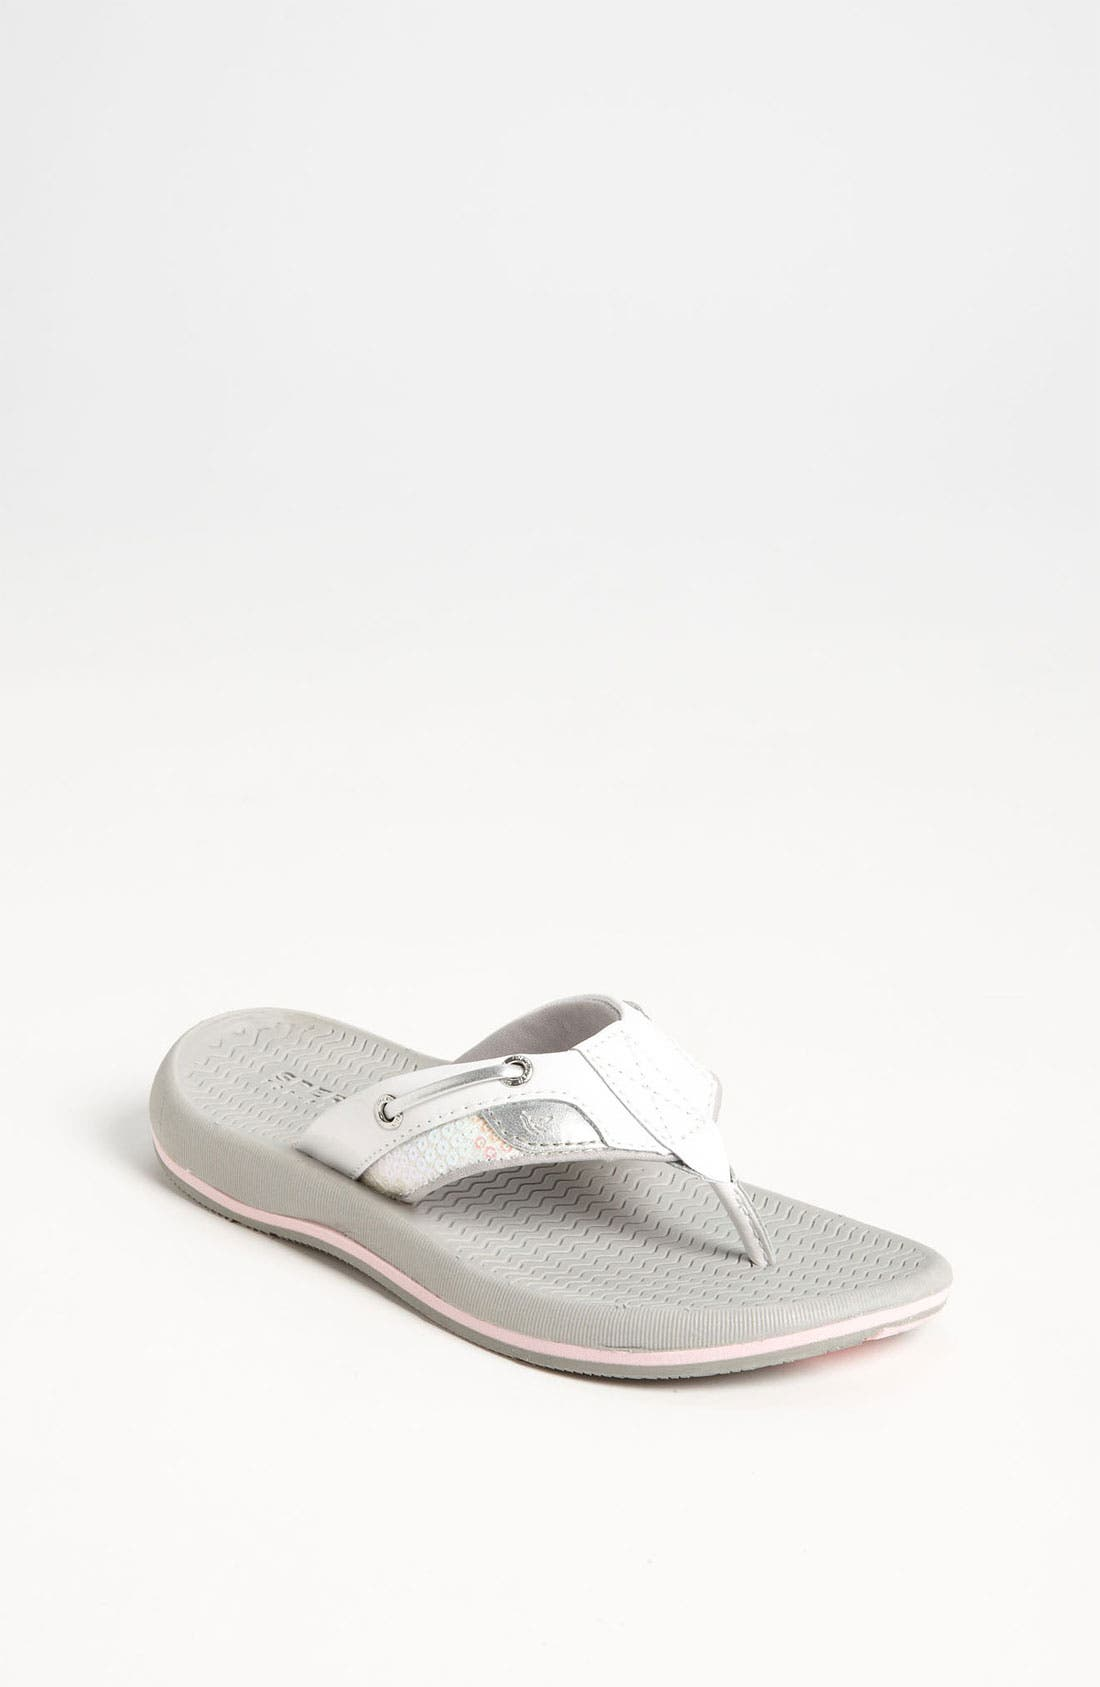 Main Image - Sperry Top-Sider® 'Bluefish' Thong Sandal (Toddler, Little Kid & Big Kid)